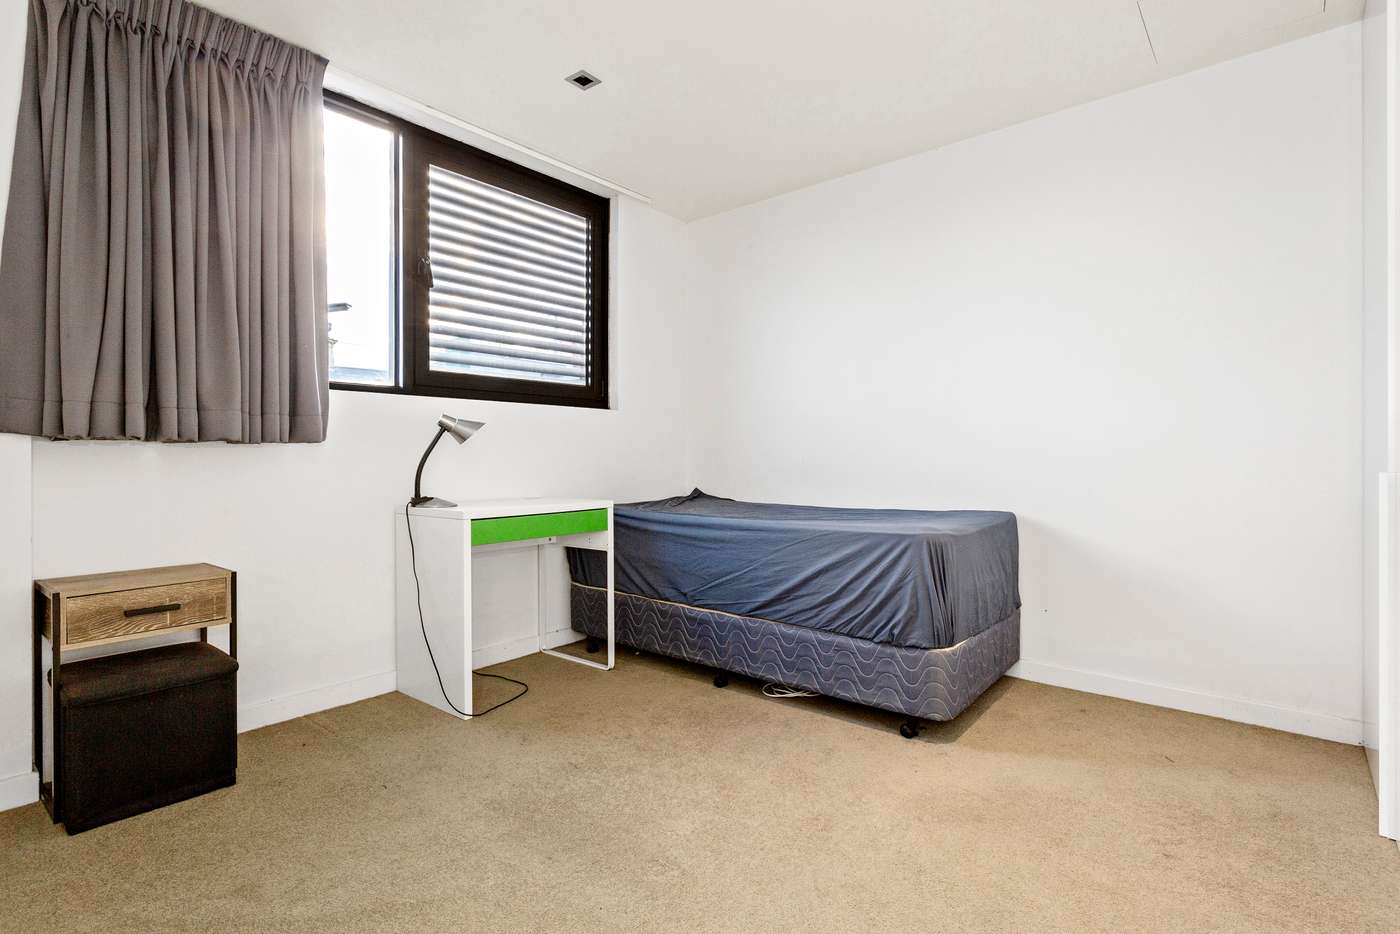 Sixth view of Homely apartment listing, 110/6 Lord Street, Richmond VIC 3121